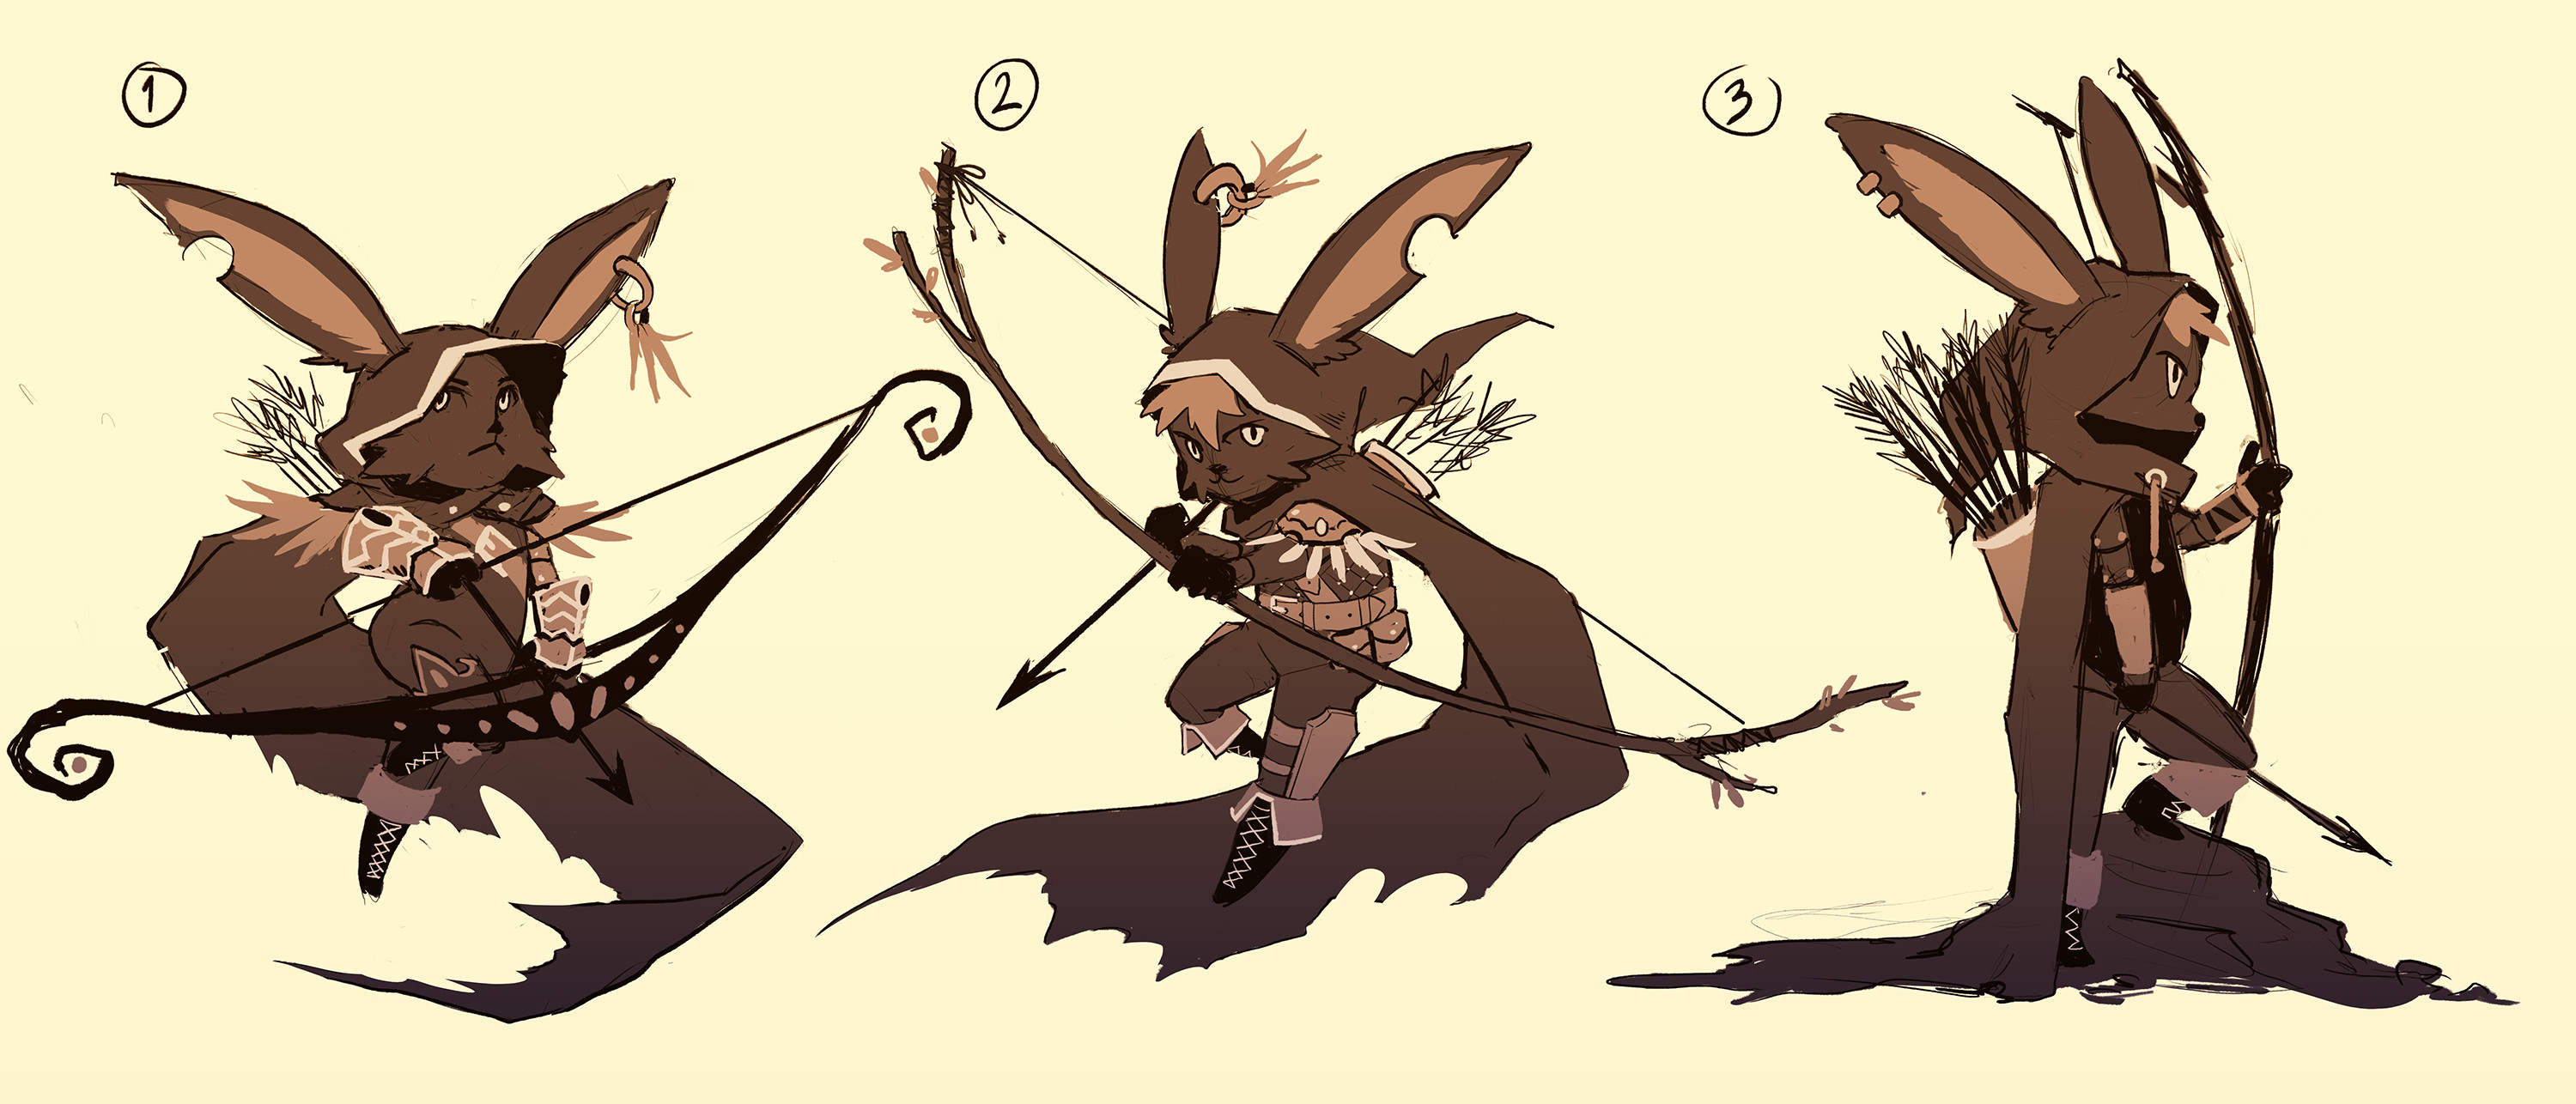 The first thumbnails I did to explore silhouettes, poses and detials. I decided to take number 2 further since I felt it had the strongest overall silhouette and room for more detail exploration.